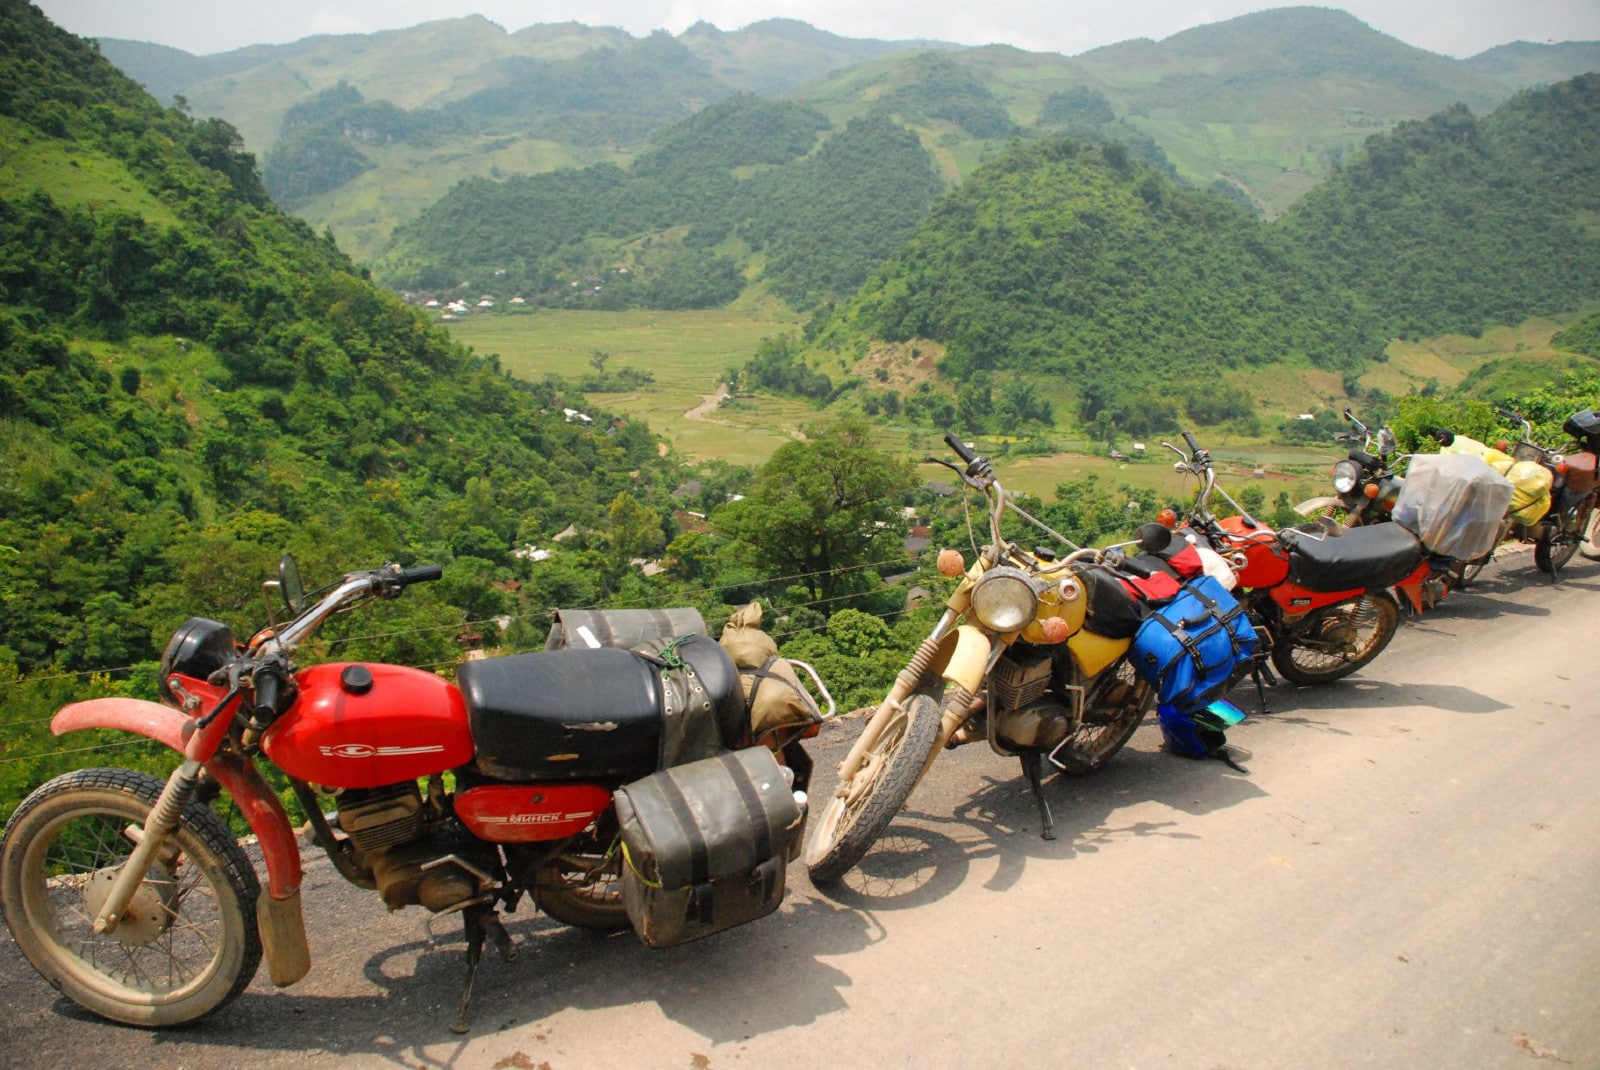 Image of a Minsk motorbike and a scenic Vietnamese view